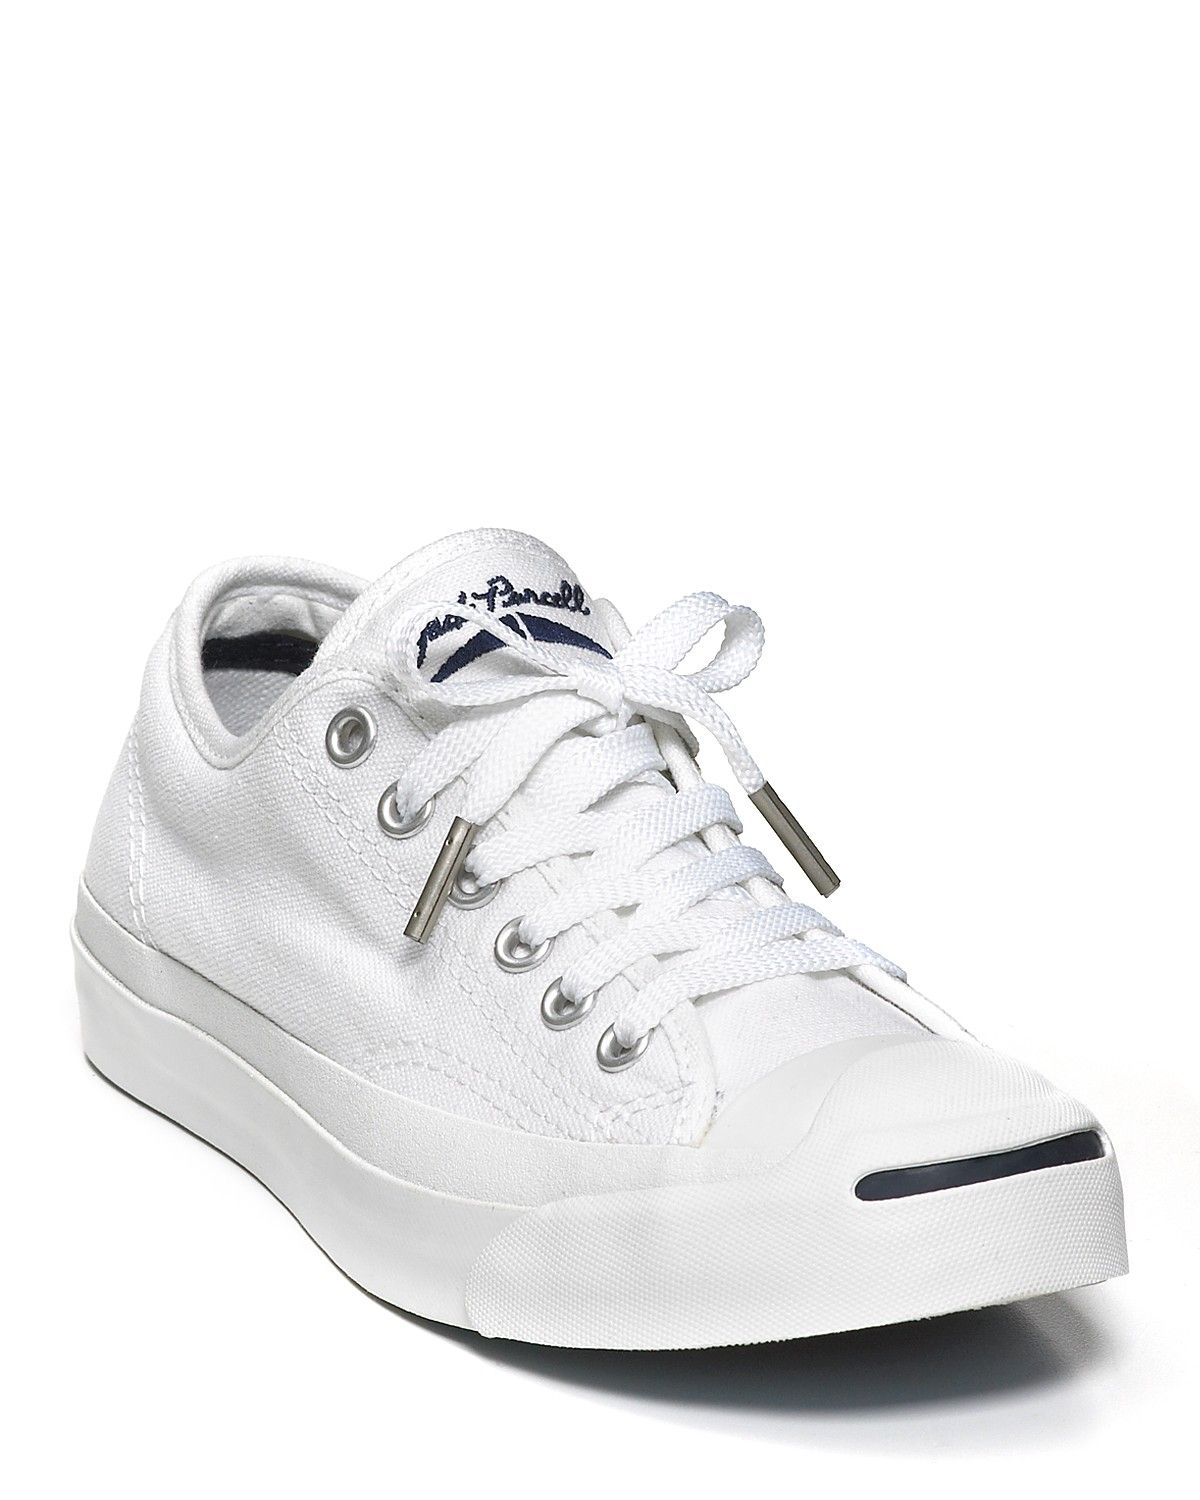 37e049f7fd7149 Converse Jack Purcell White Core Sneakers - everyone should have a pair of  these in their closet!